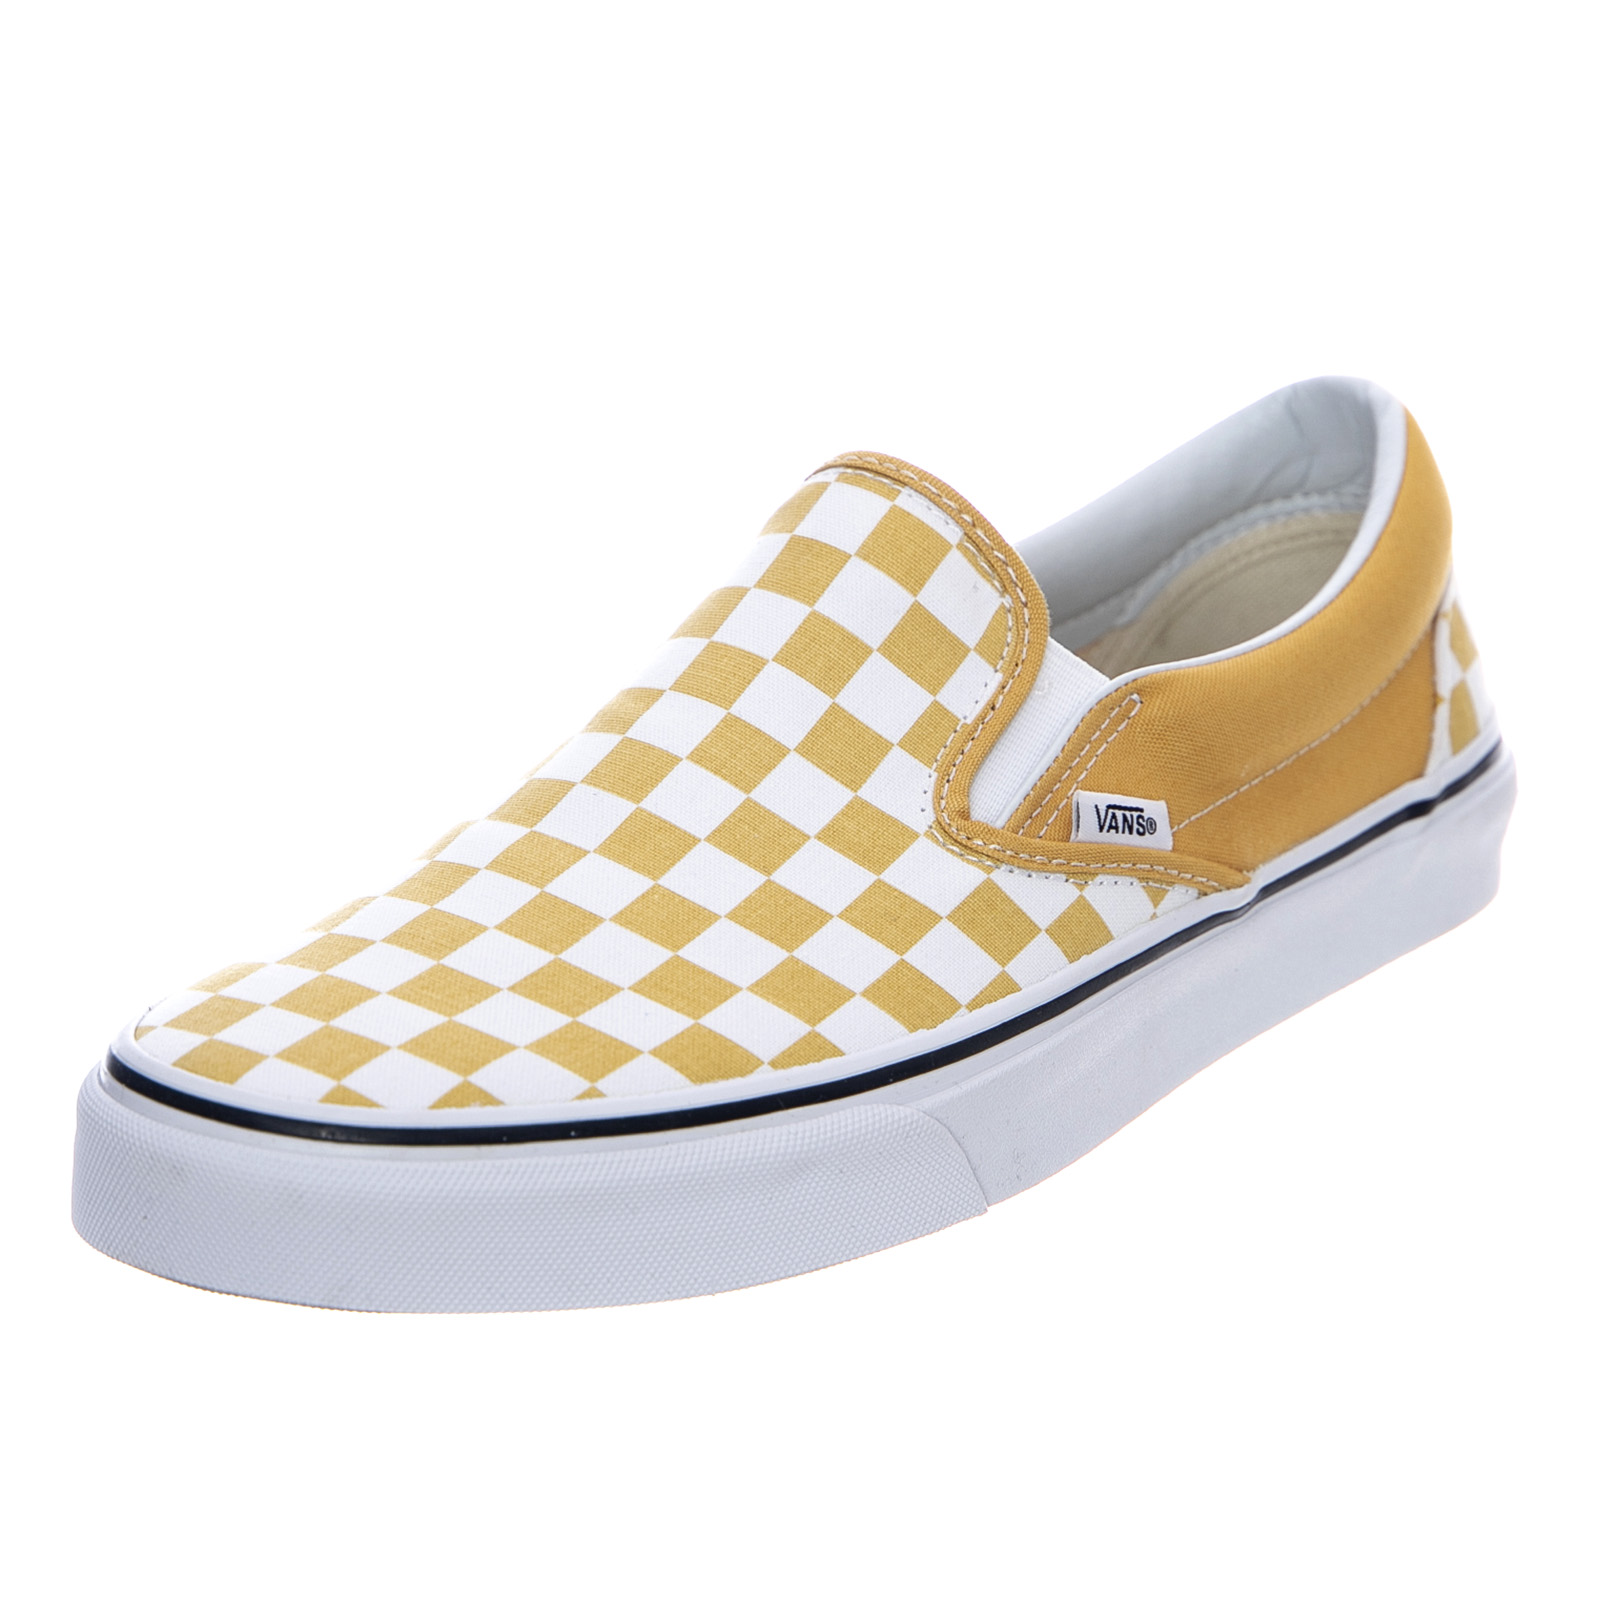 9d7dcfb85 Vans Ua Classic Slip-On - Checkerboard/Ochre - Slip-On Flats Yellow ...